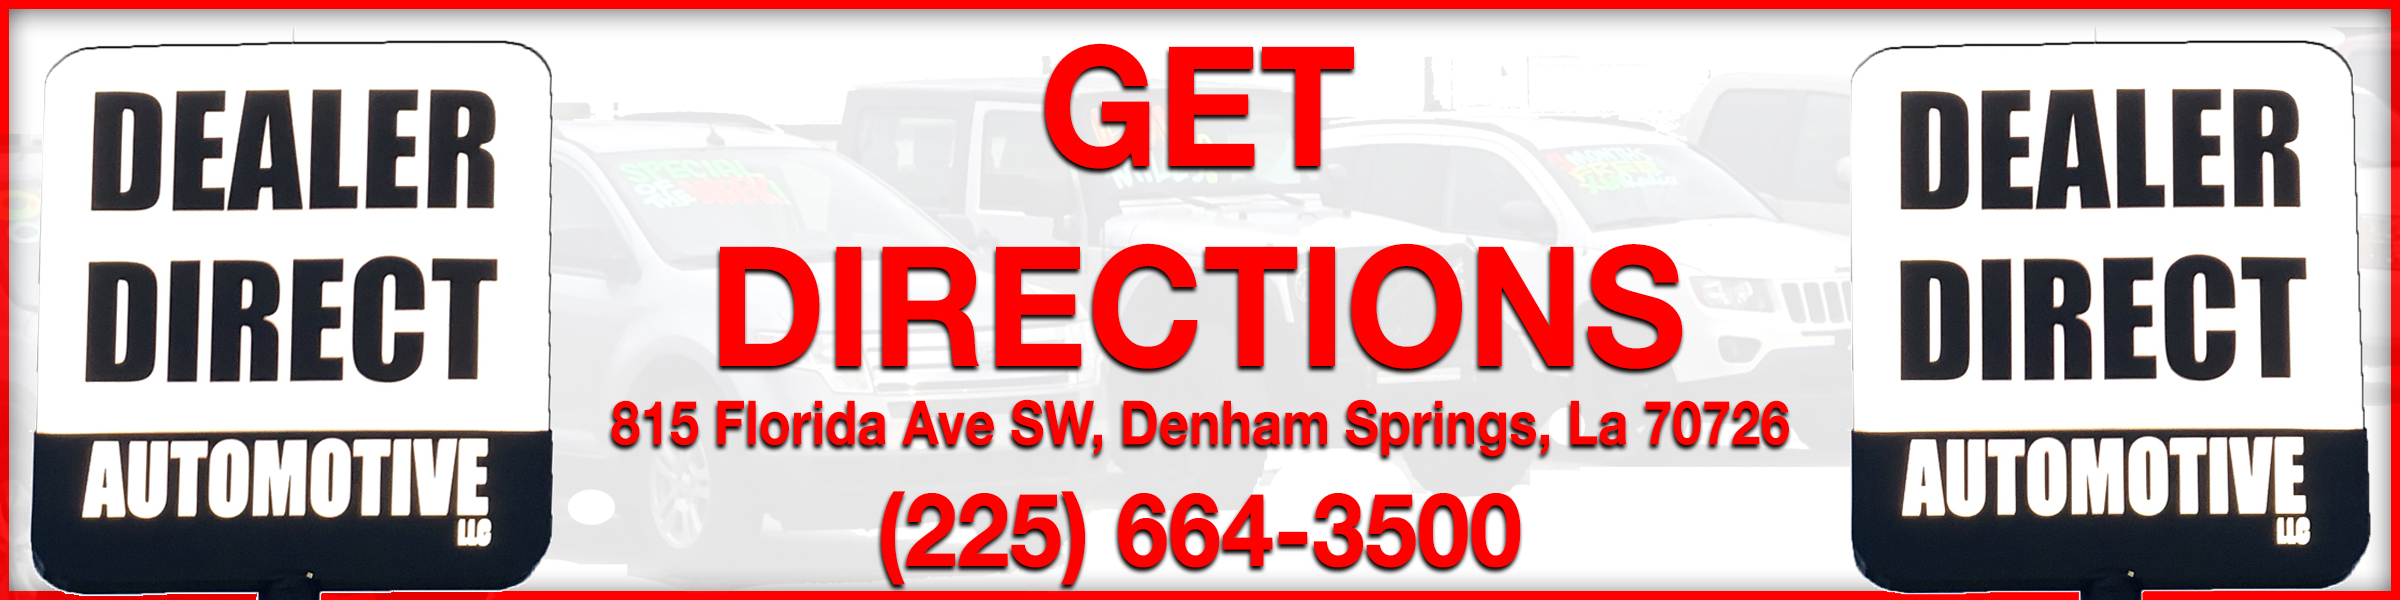 Get Directions and Maps to Dealer Direct Automotive in Denham Springs